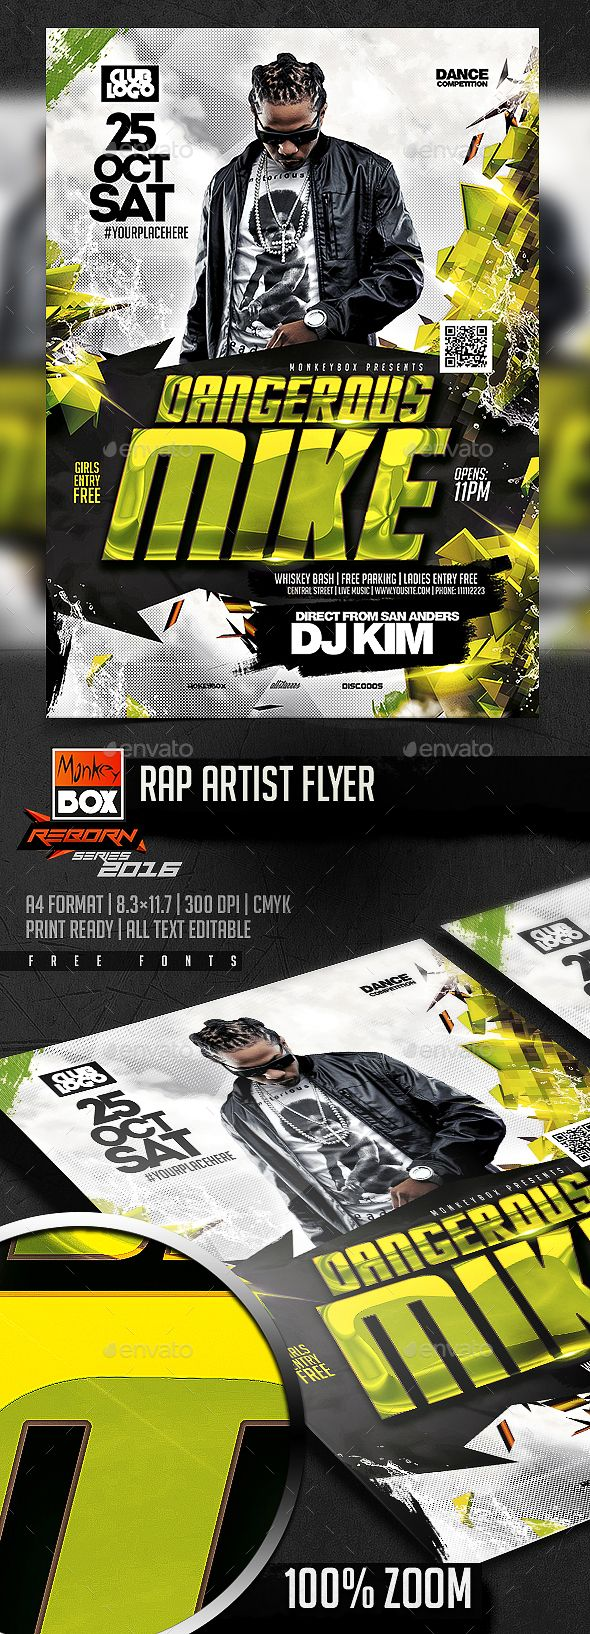 rap artist flyer psd template monkeybox download https